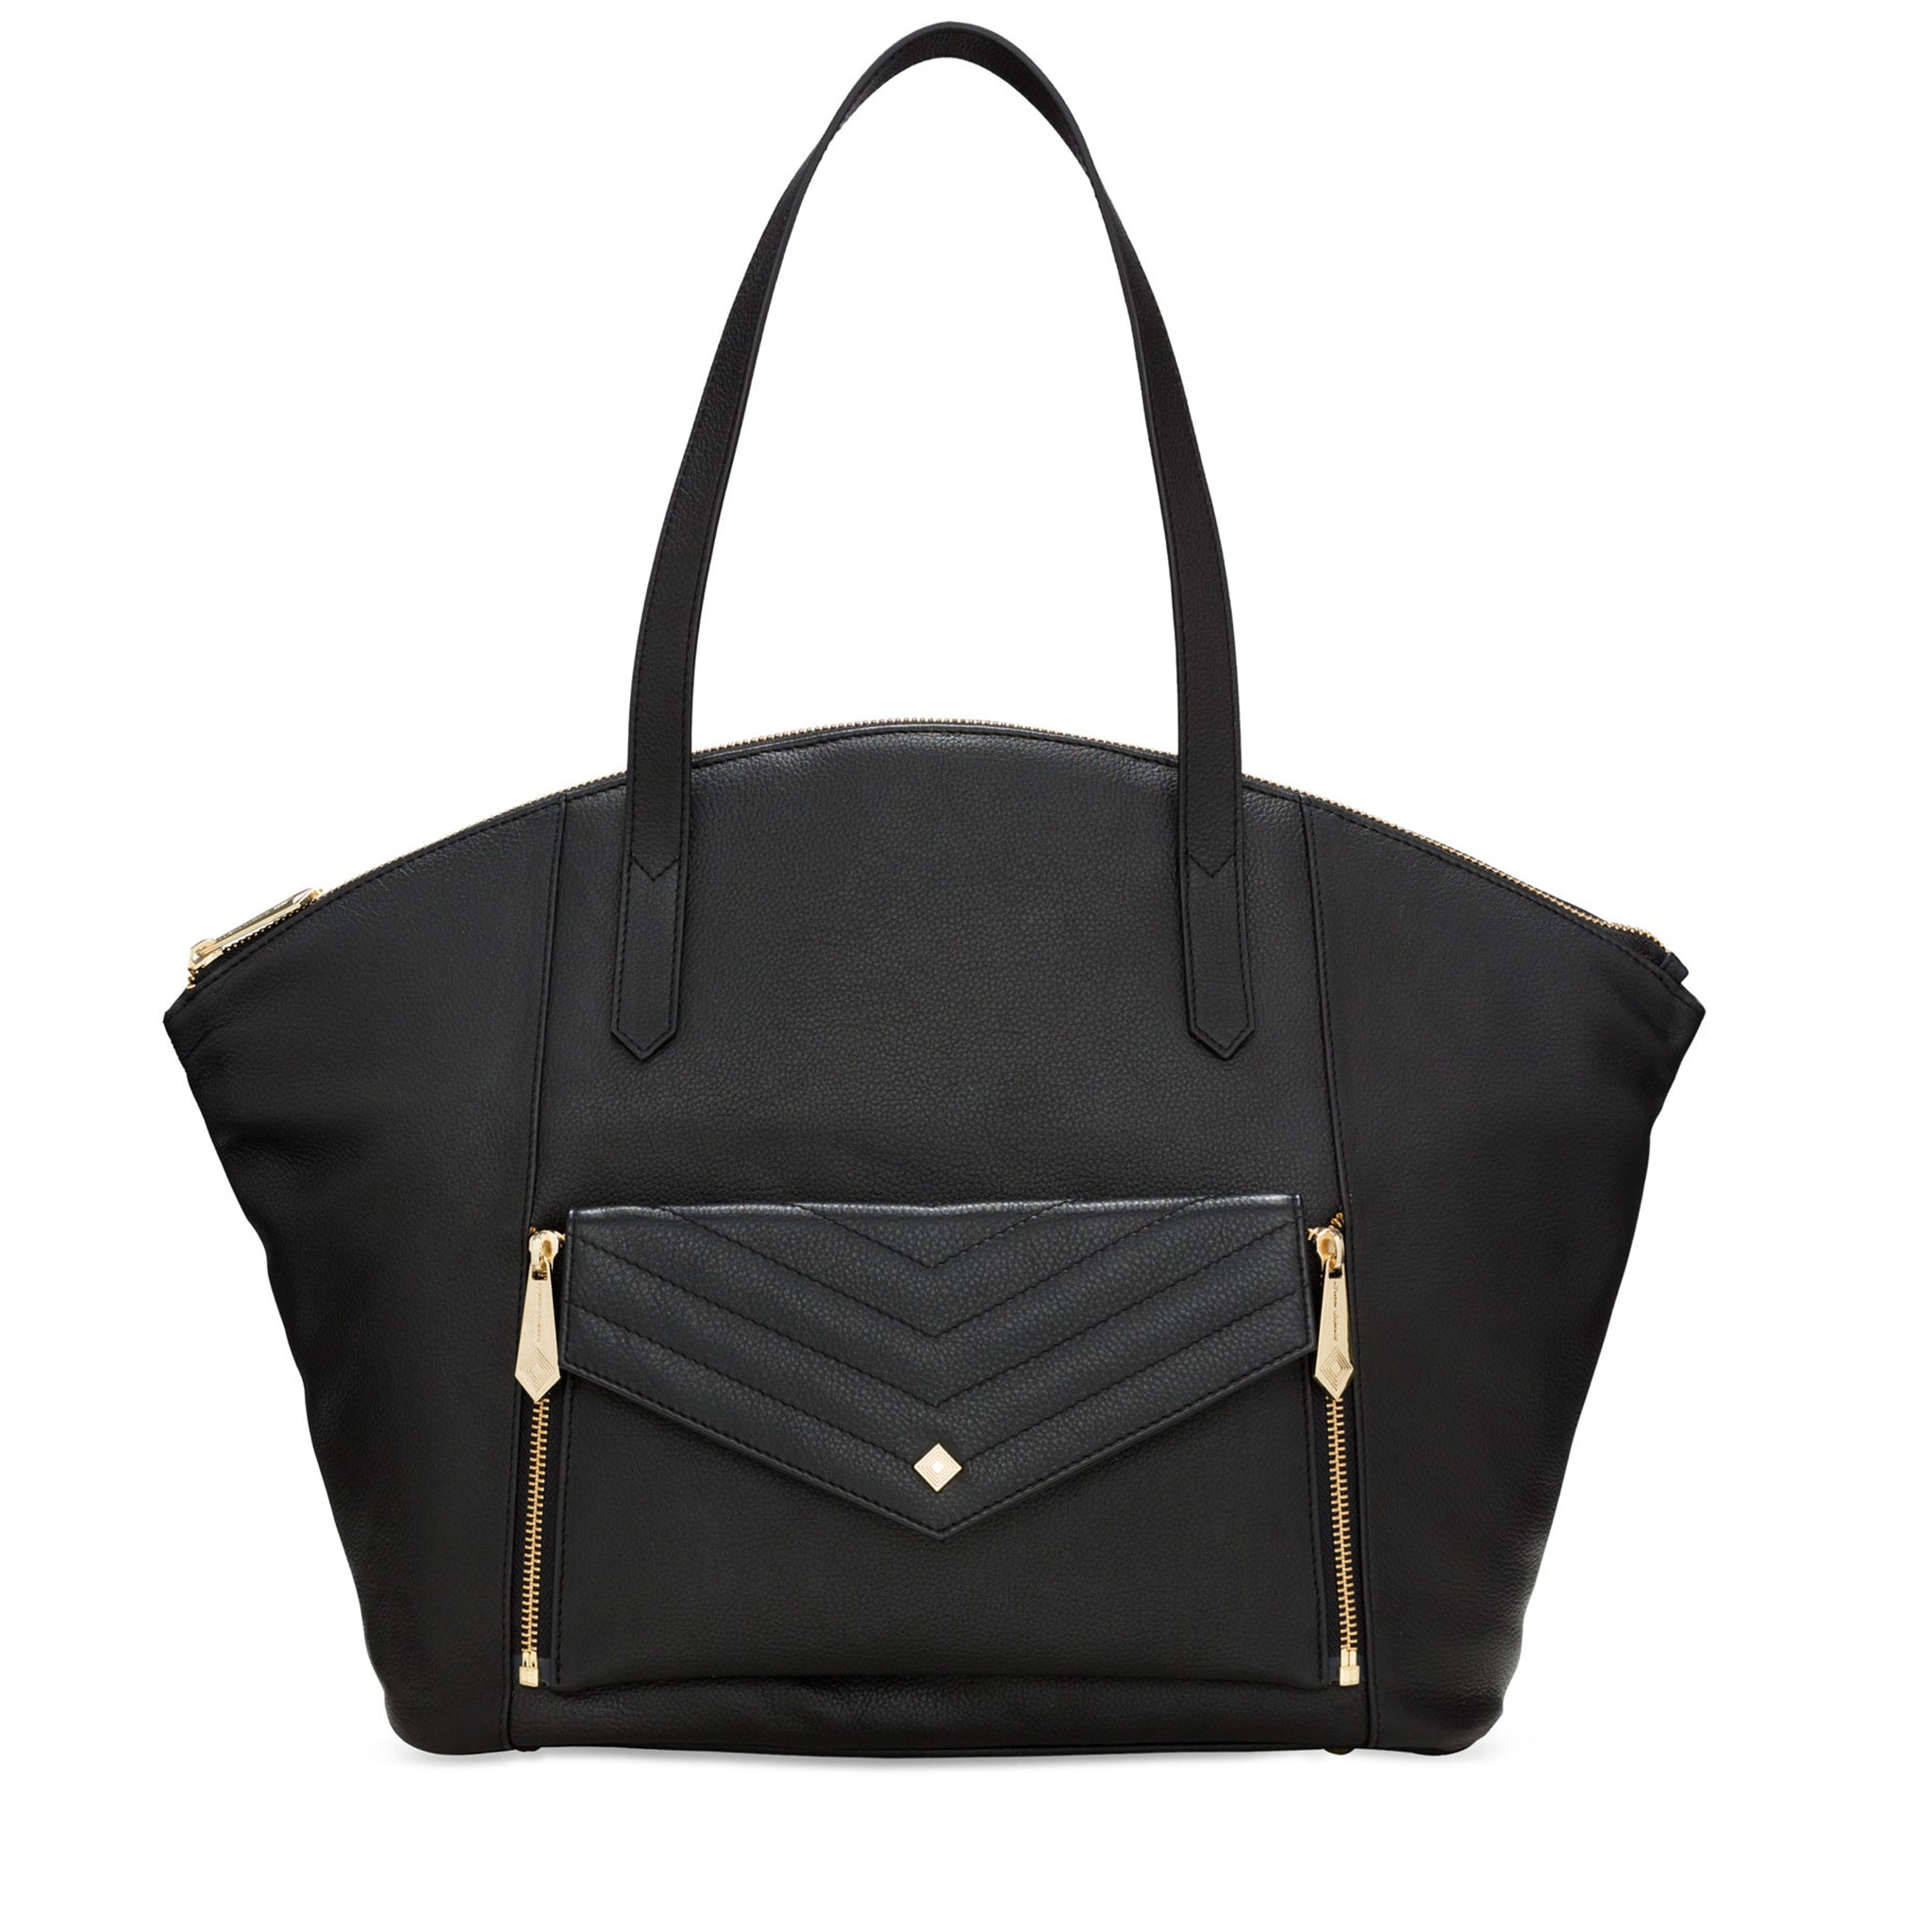 KT Tote handbag | vegan leather SALE - 50% OFF - Jennifer Hamley luxury leather handbags and laptop bag for working women